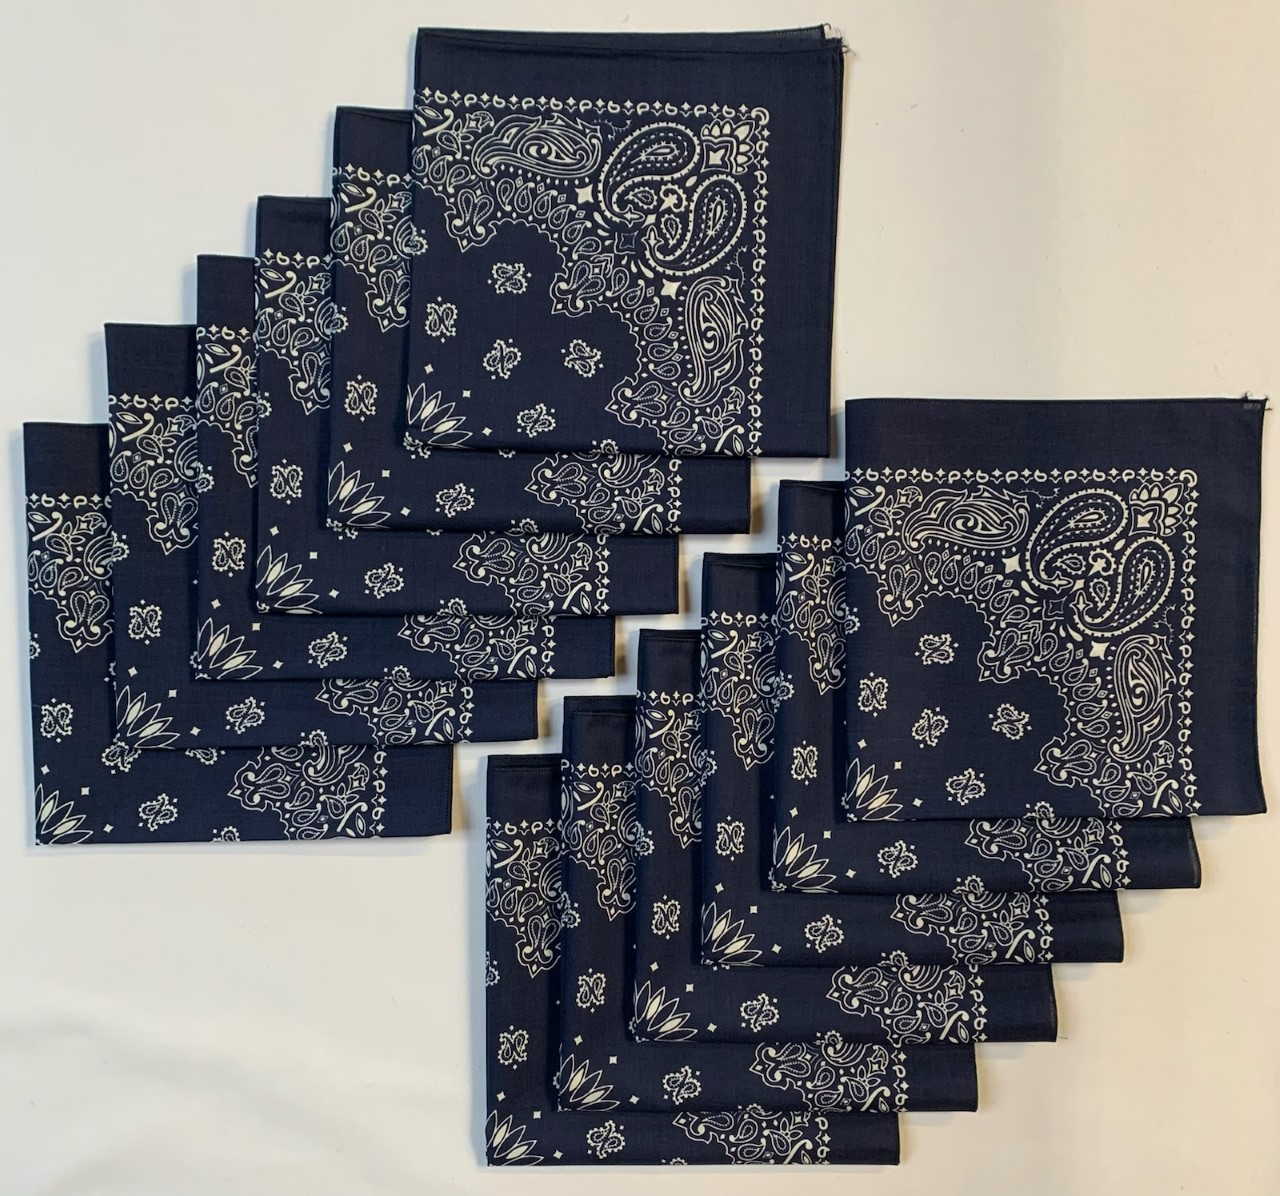 "Made in the USA Navy Paisley Bandanas 12 Pk, 22 x 22"" Cotton"